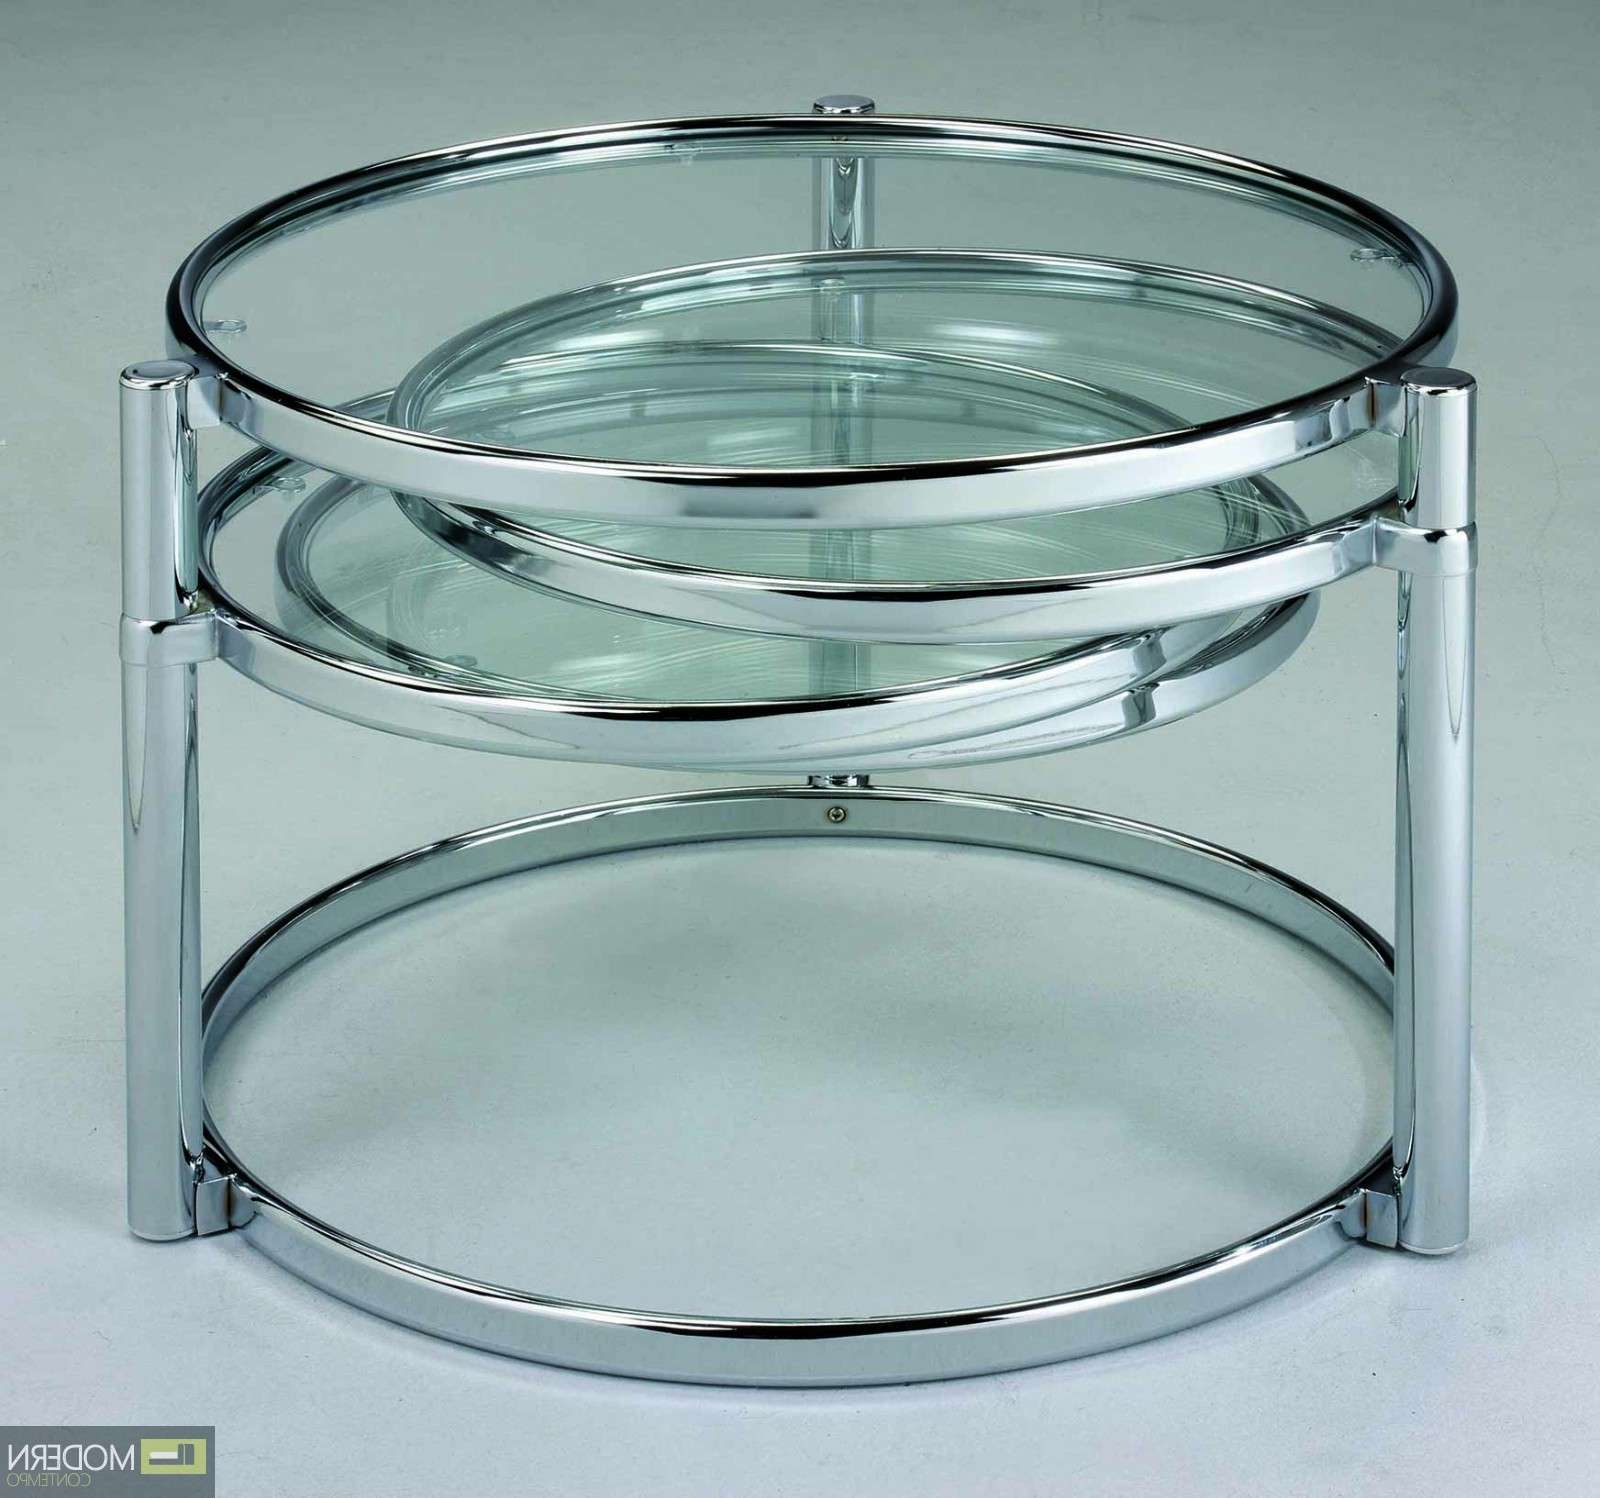 2018 Swivel Coffee Tables For Glass Coffee Tables: Excellent Glass Swivel Coffee Table Design (View 2 of 20)